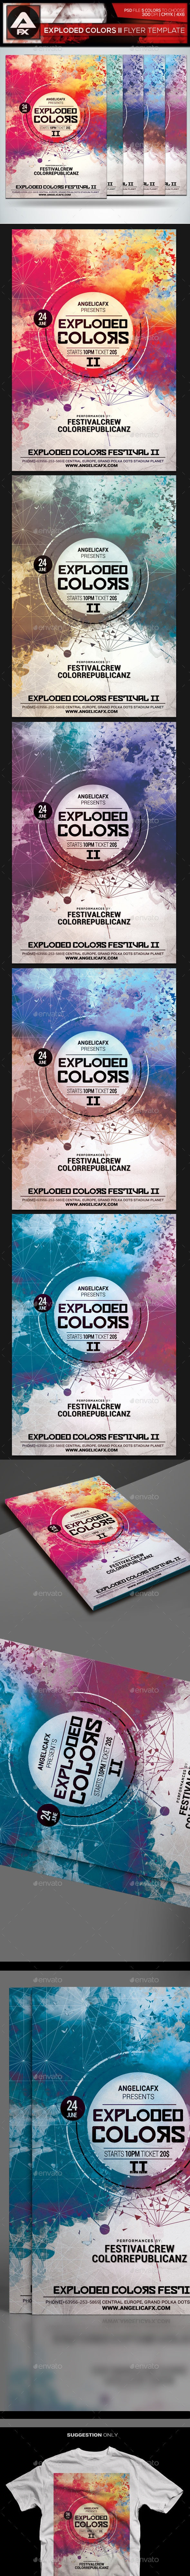 Exploded Colors II Flyer Template - Flyers Print Templates